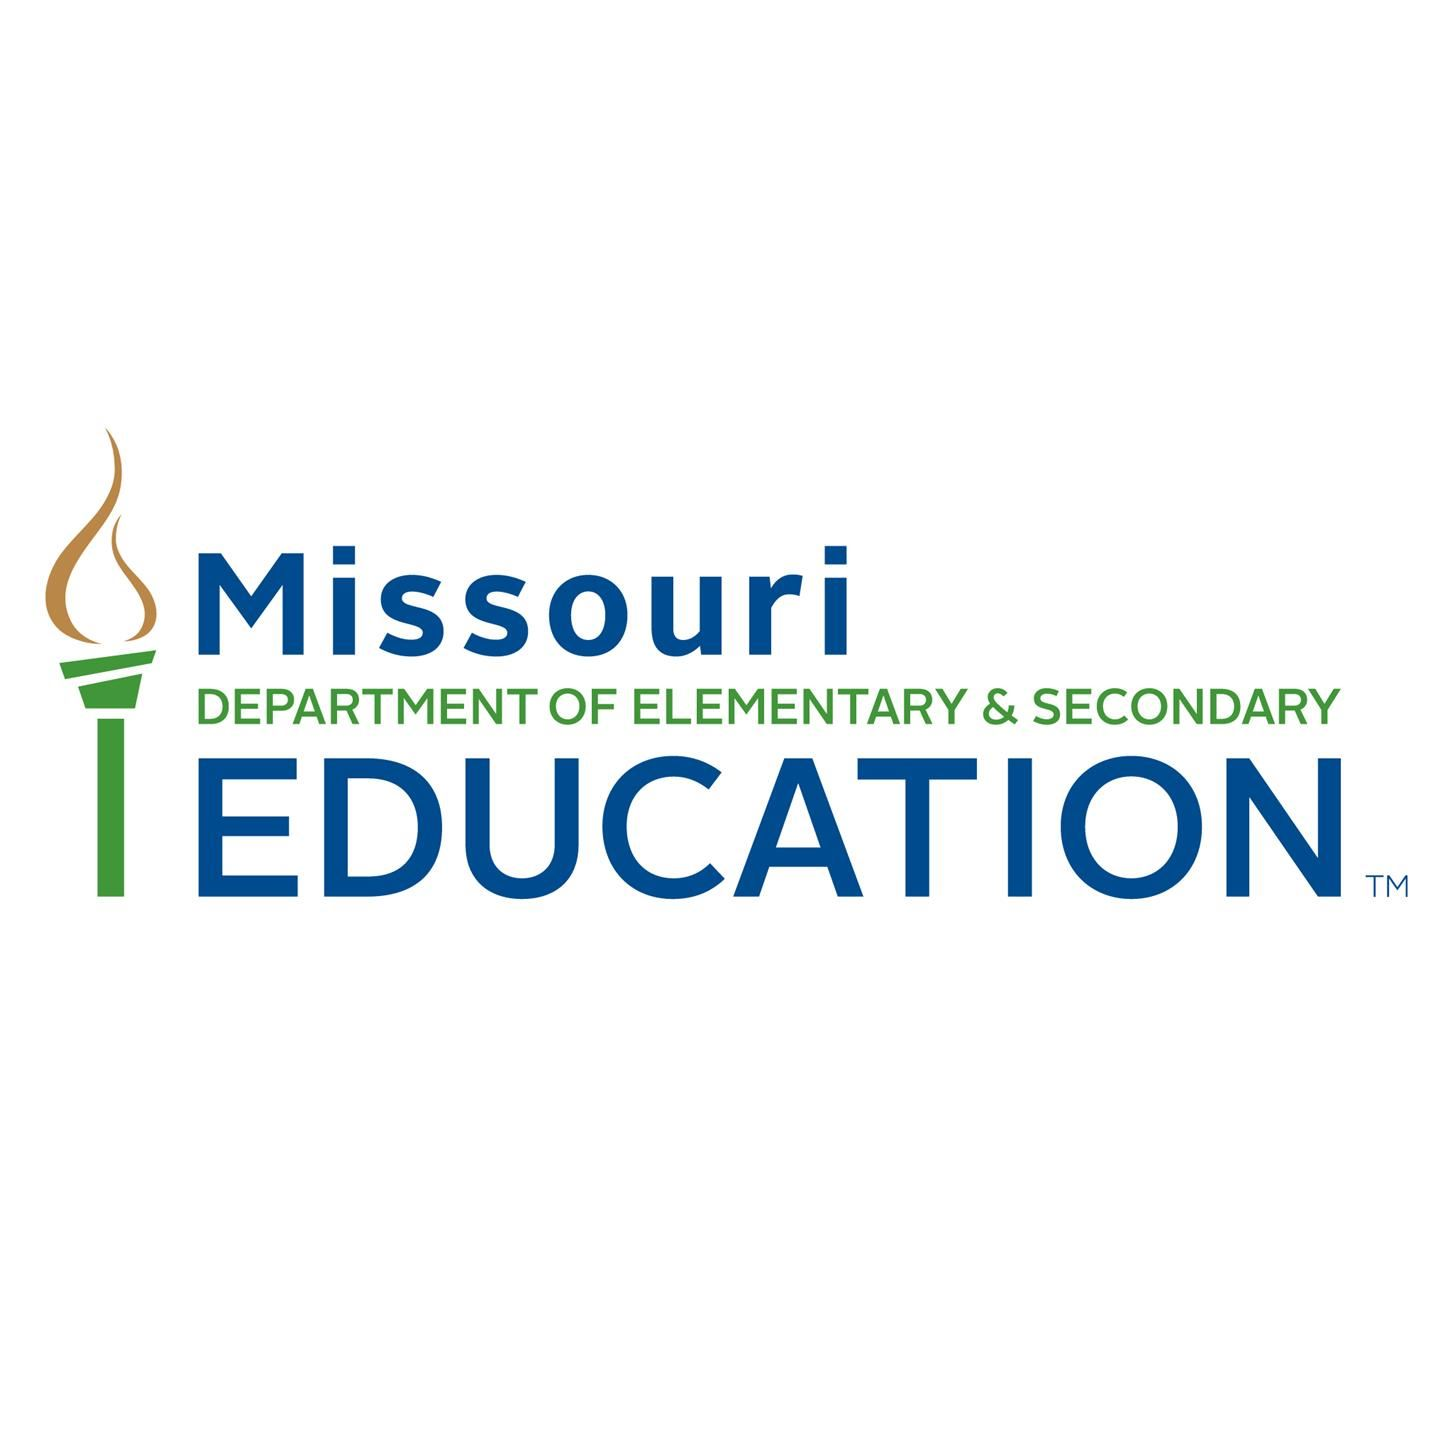 West Plains School District is Among 32 Schools Selected to Participate in Missouri's $18 Million Literacy Development Grant Program